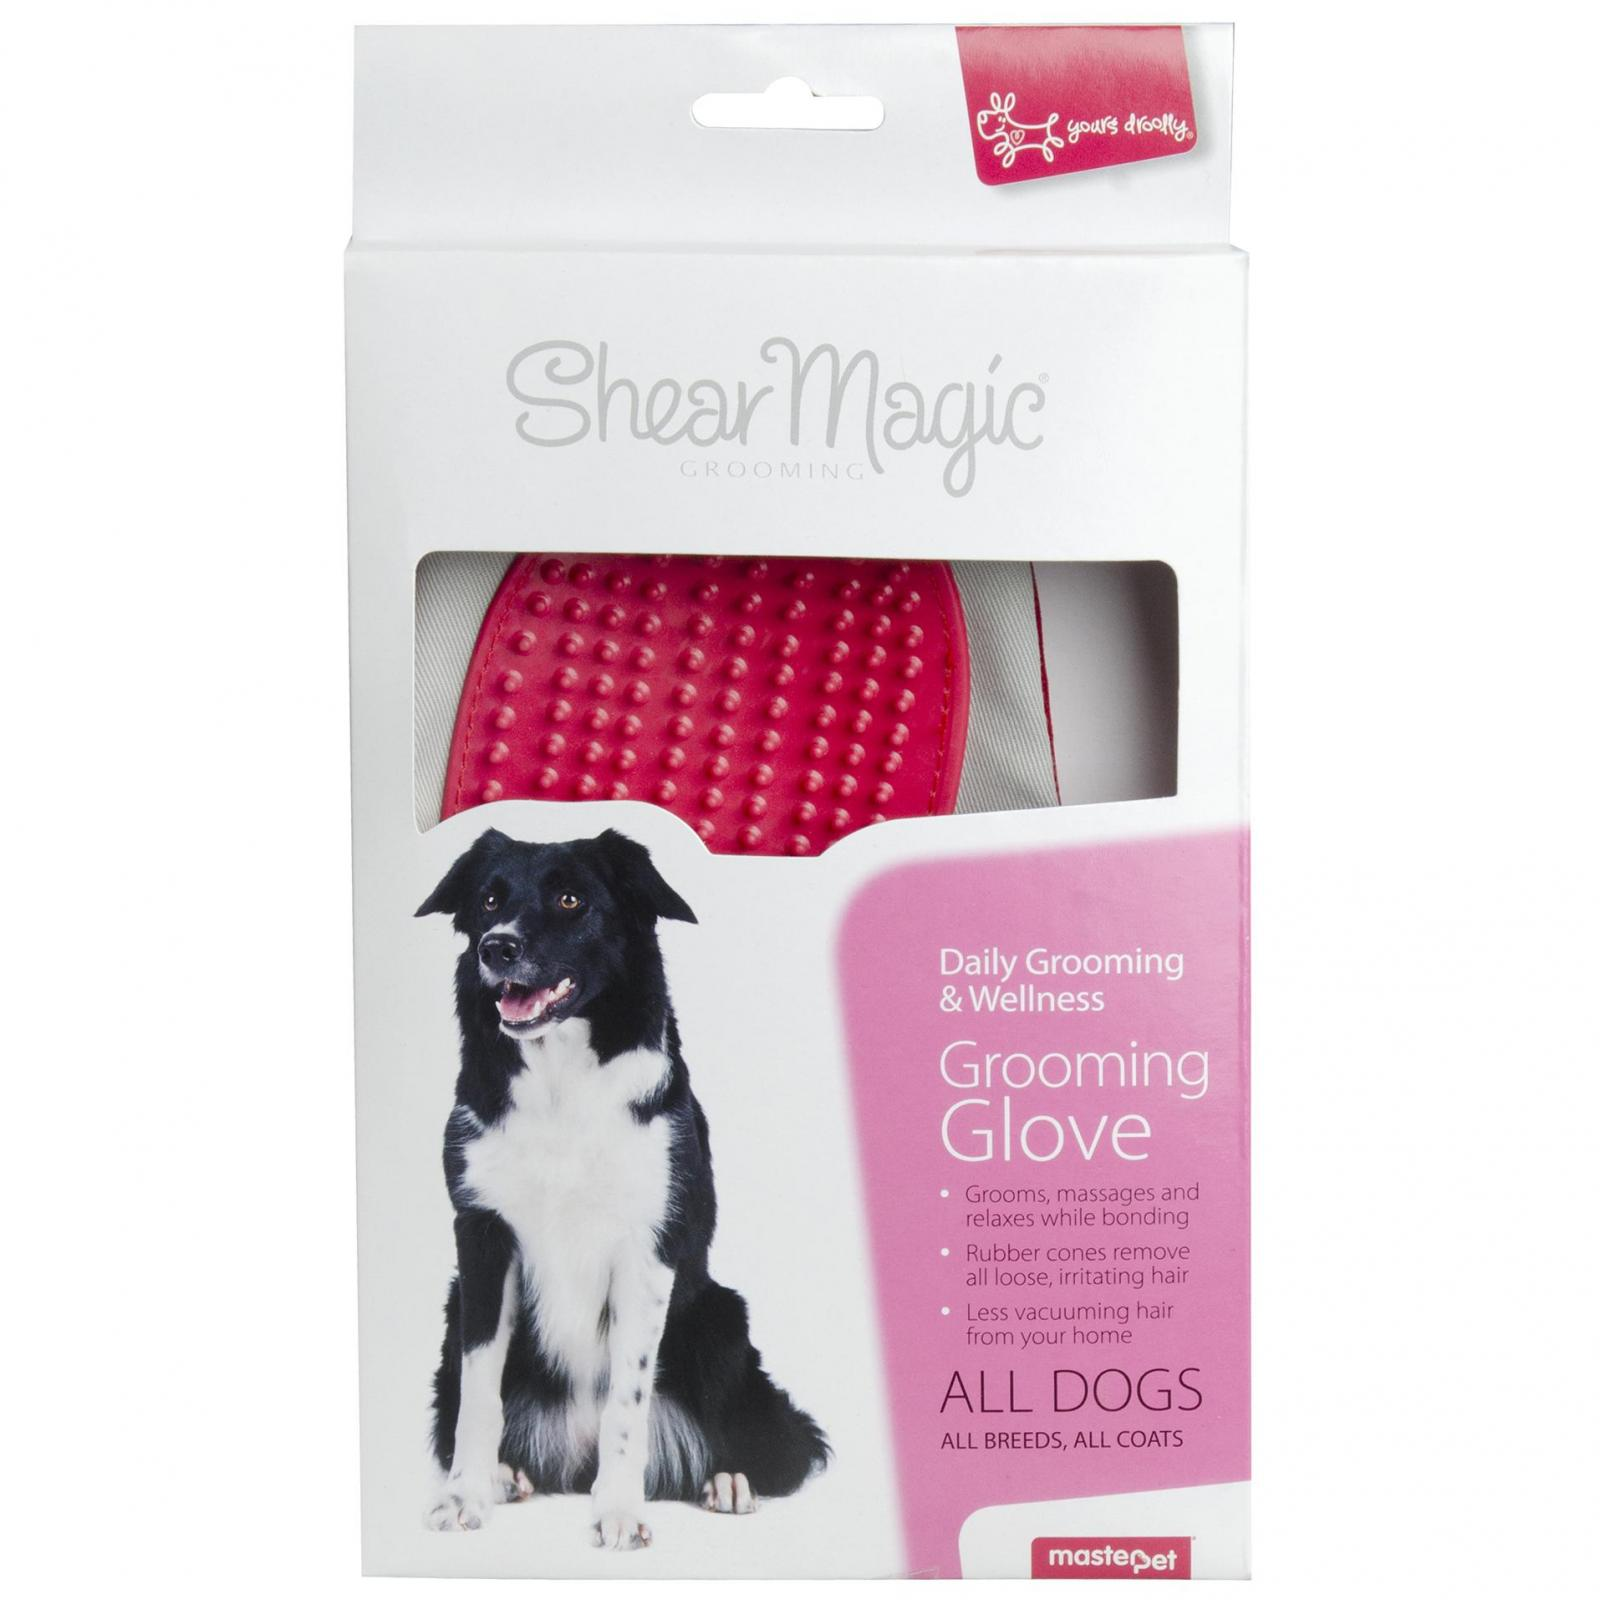 Yours Droolly Yours Droolly Shear Magic Grooming Glove